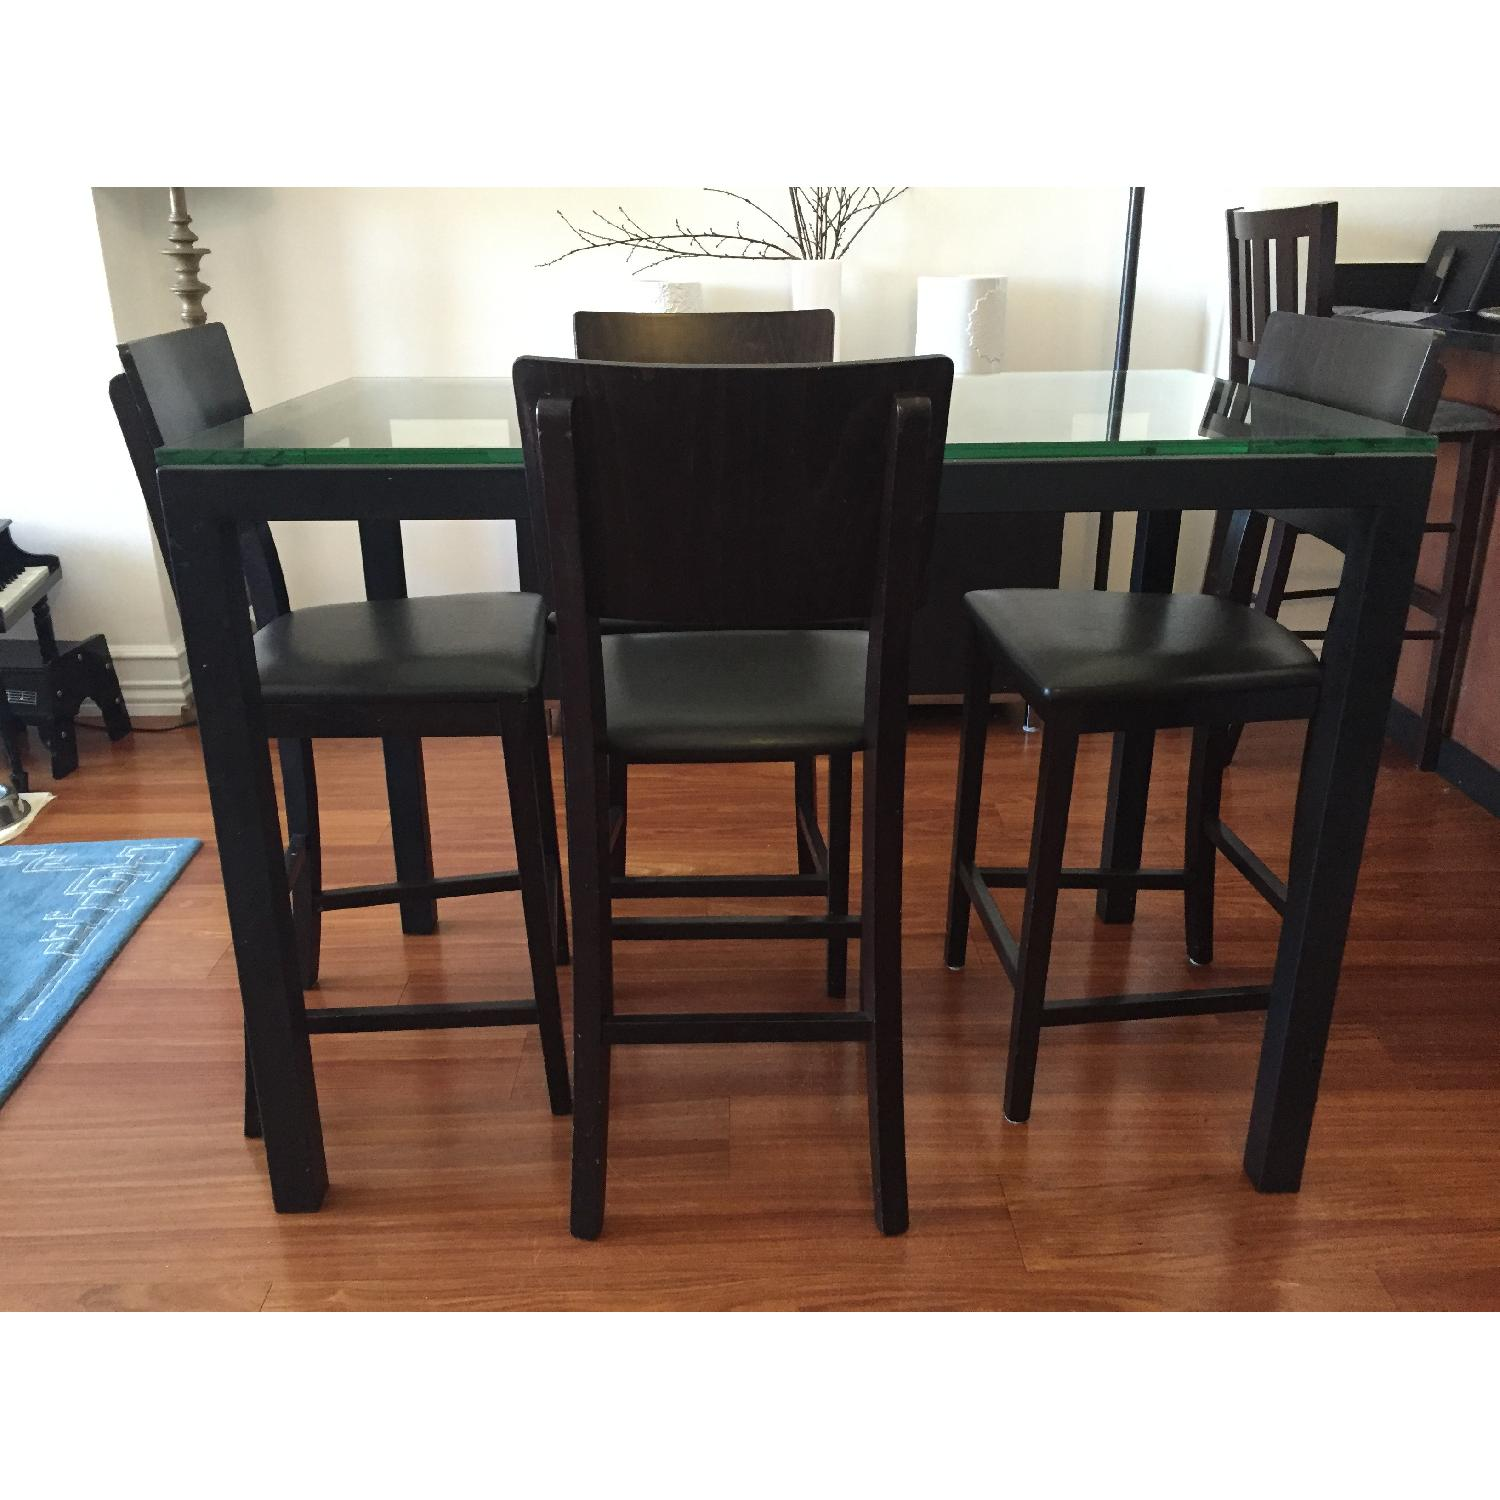 Crate & Barrel Clear Glass Top/ Natural Dark Steel Base Parsons High Dining Table w/ 4 Bar Stools - image-3